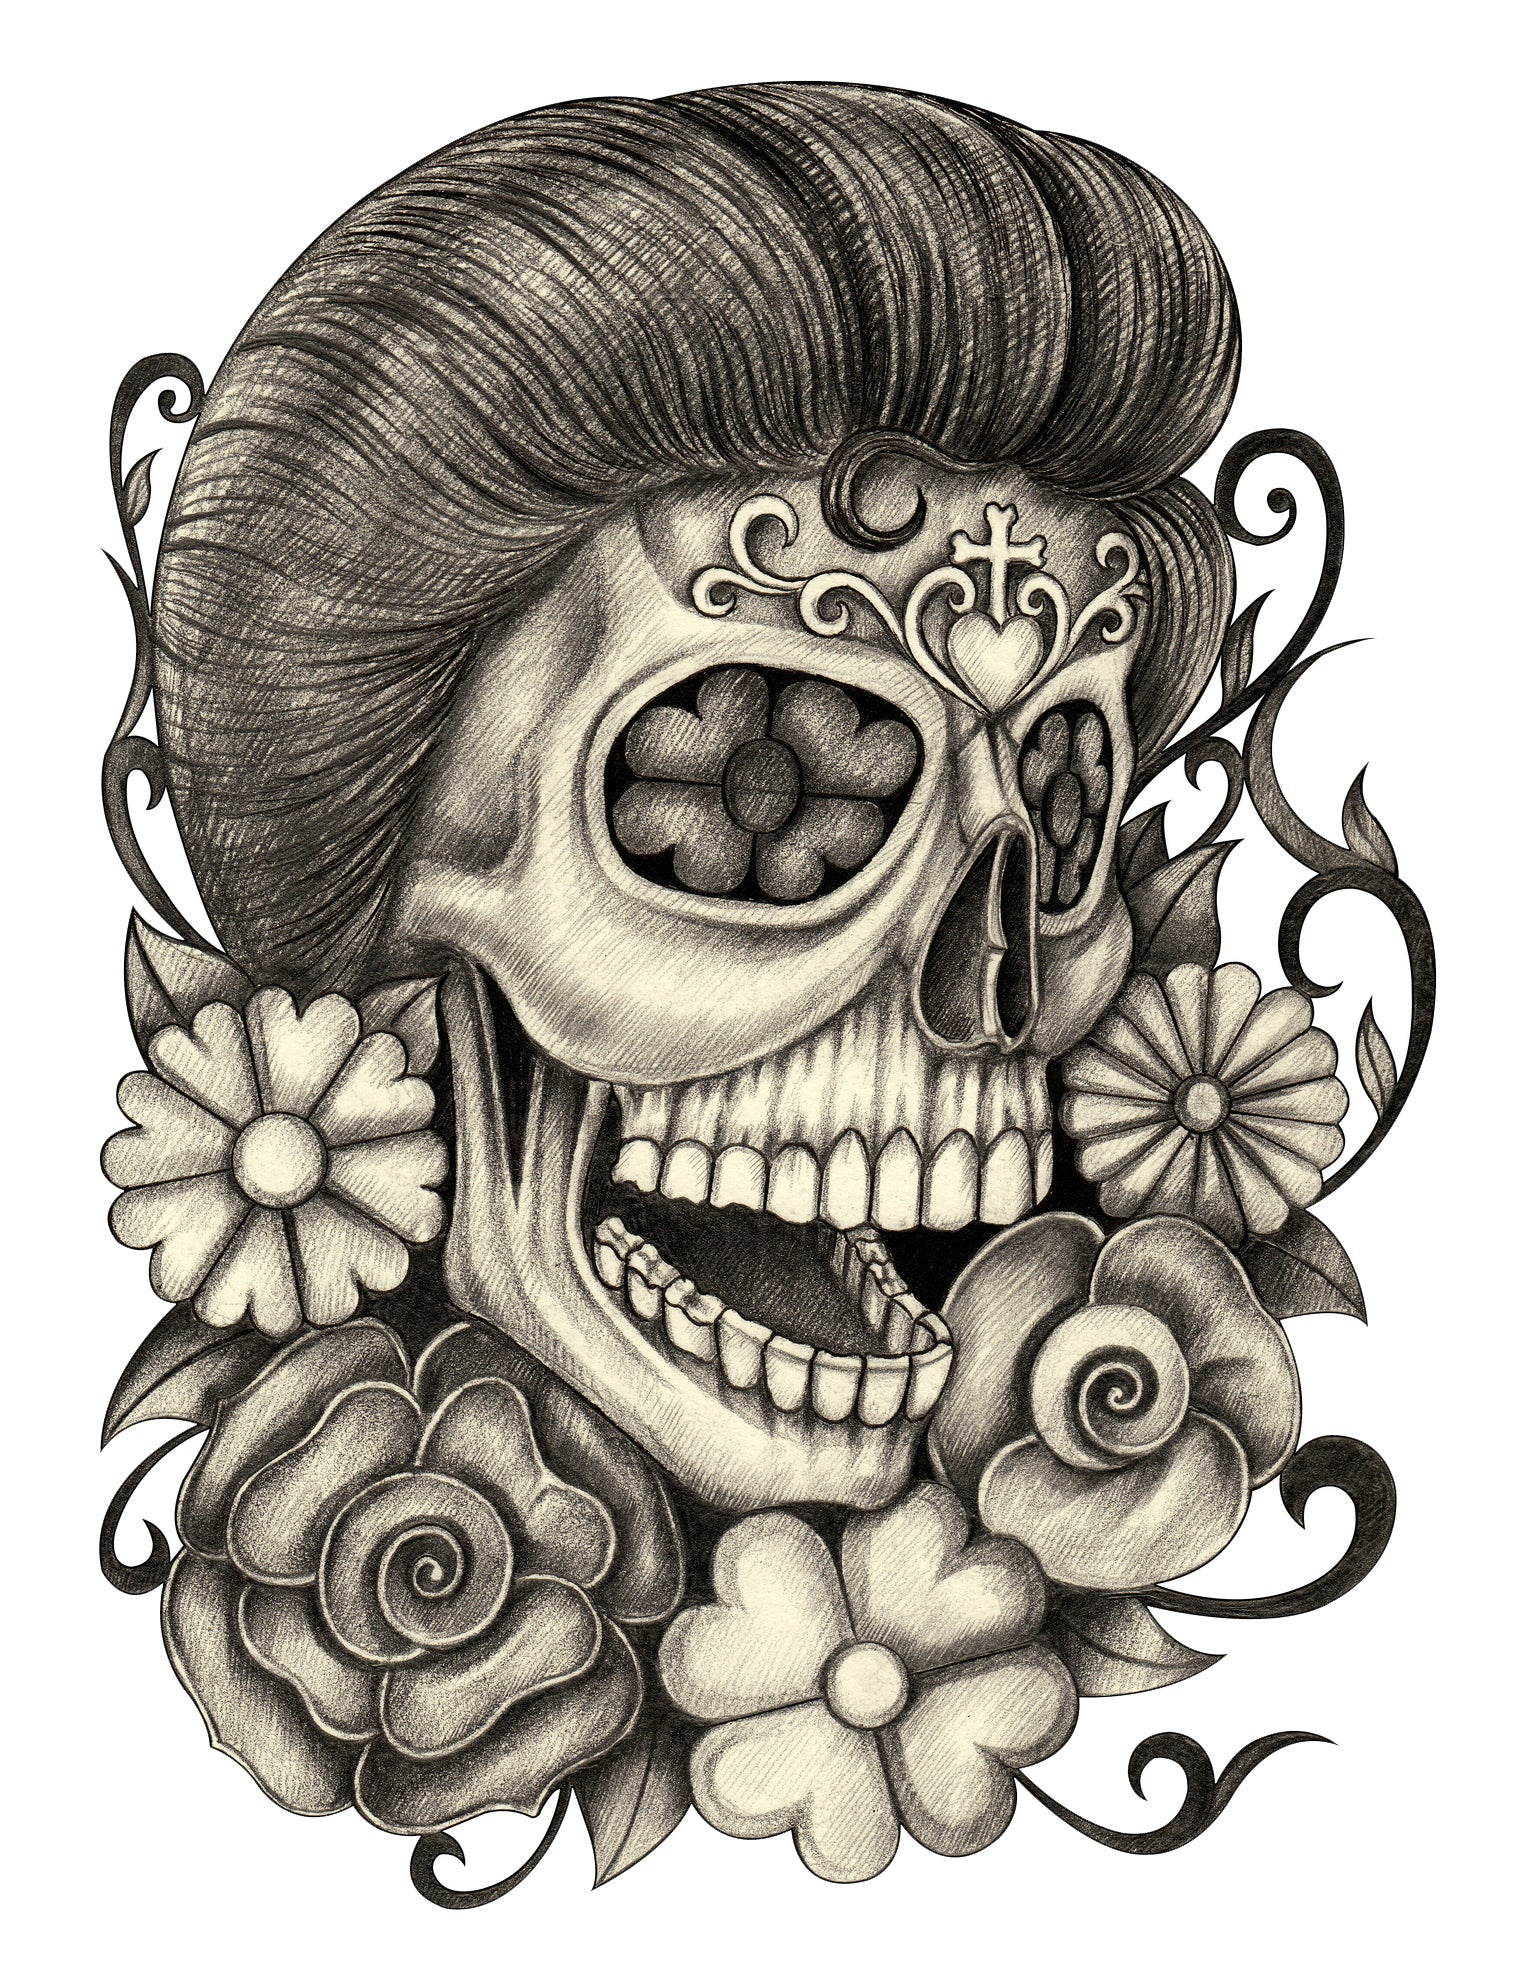 Pencil Sketch Floral Skull with Flowers and Swirls Vinyl Decal Sticker